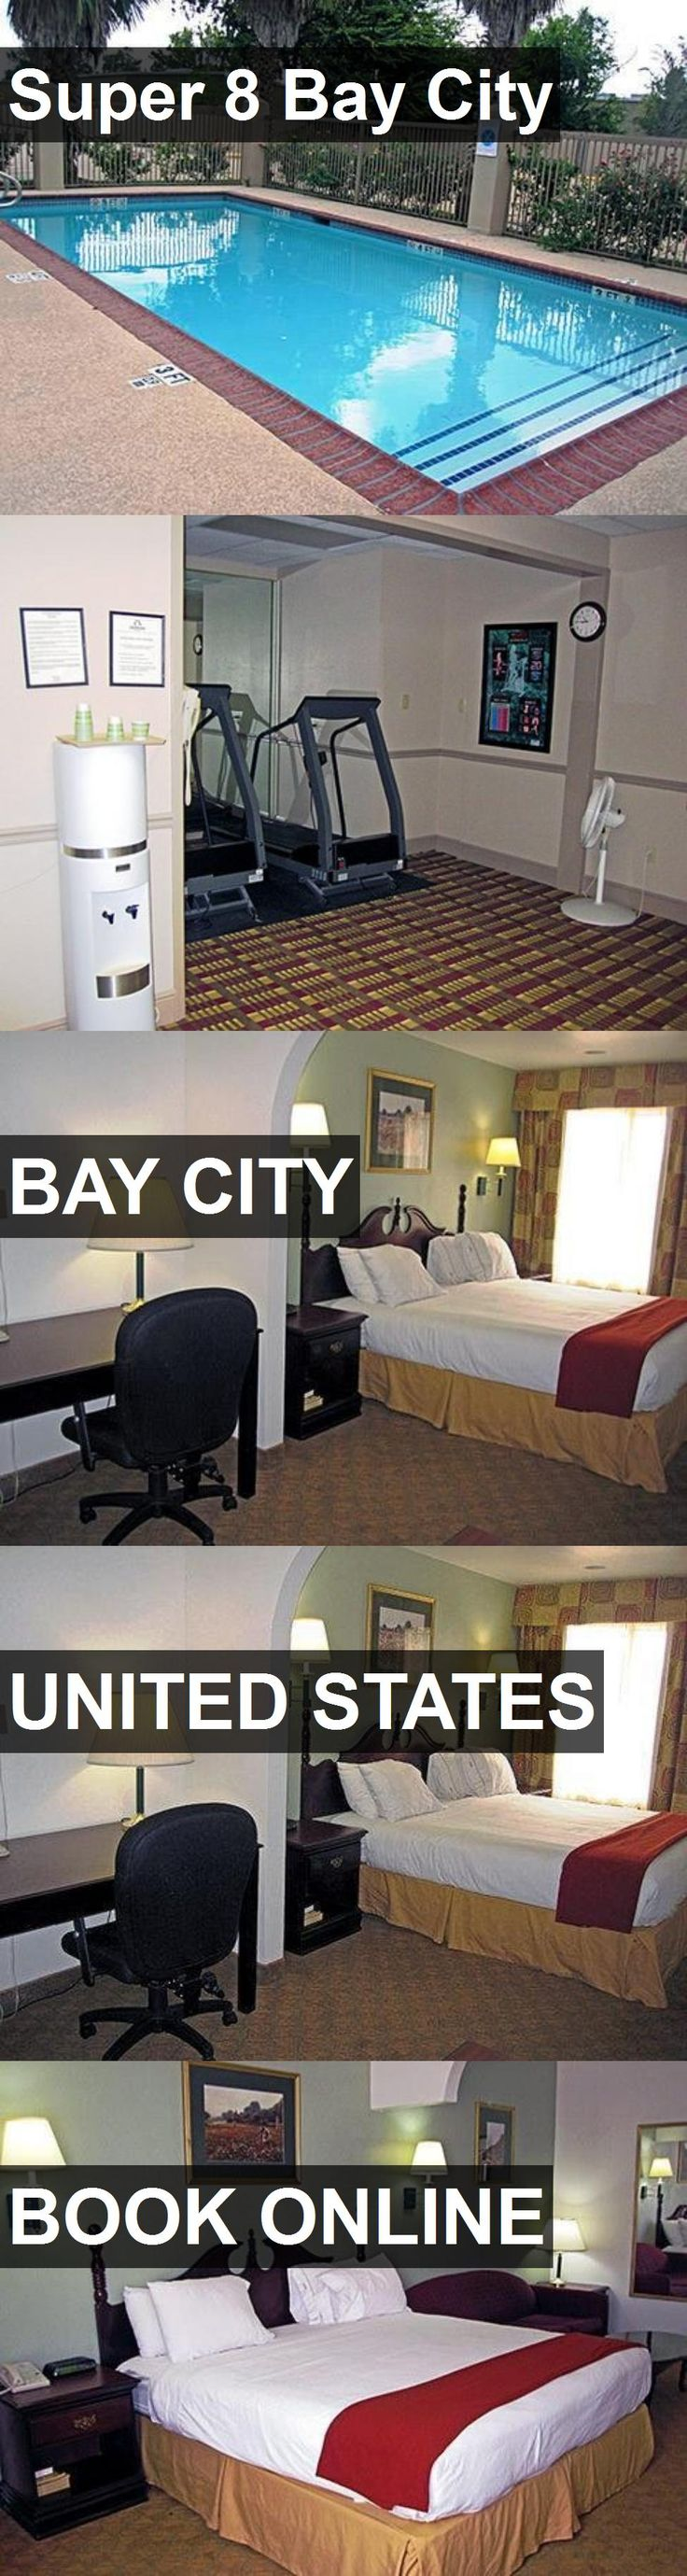 Hotel Super 8 Bay City in Bay City, United States. For more information, photos, reviews and best prices please follow the link. #UnitedStates #BayCity #Super8BayCity #hotel #travel #vacation